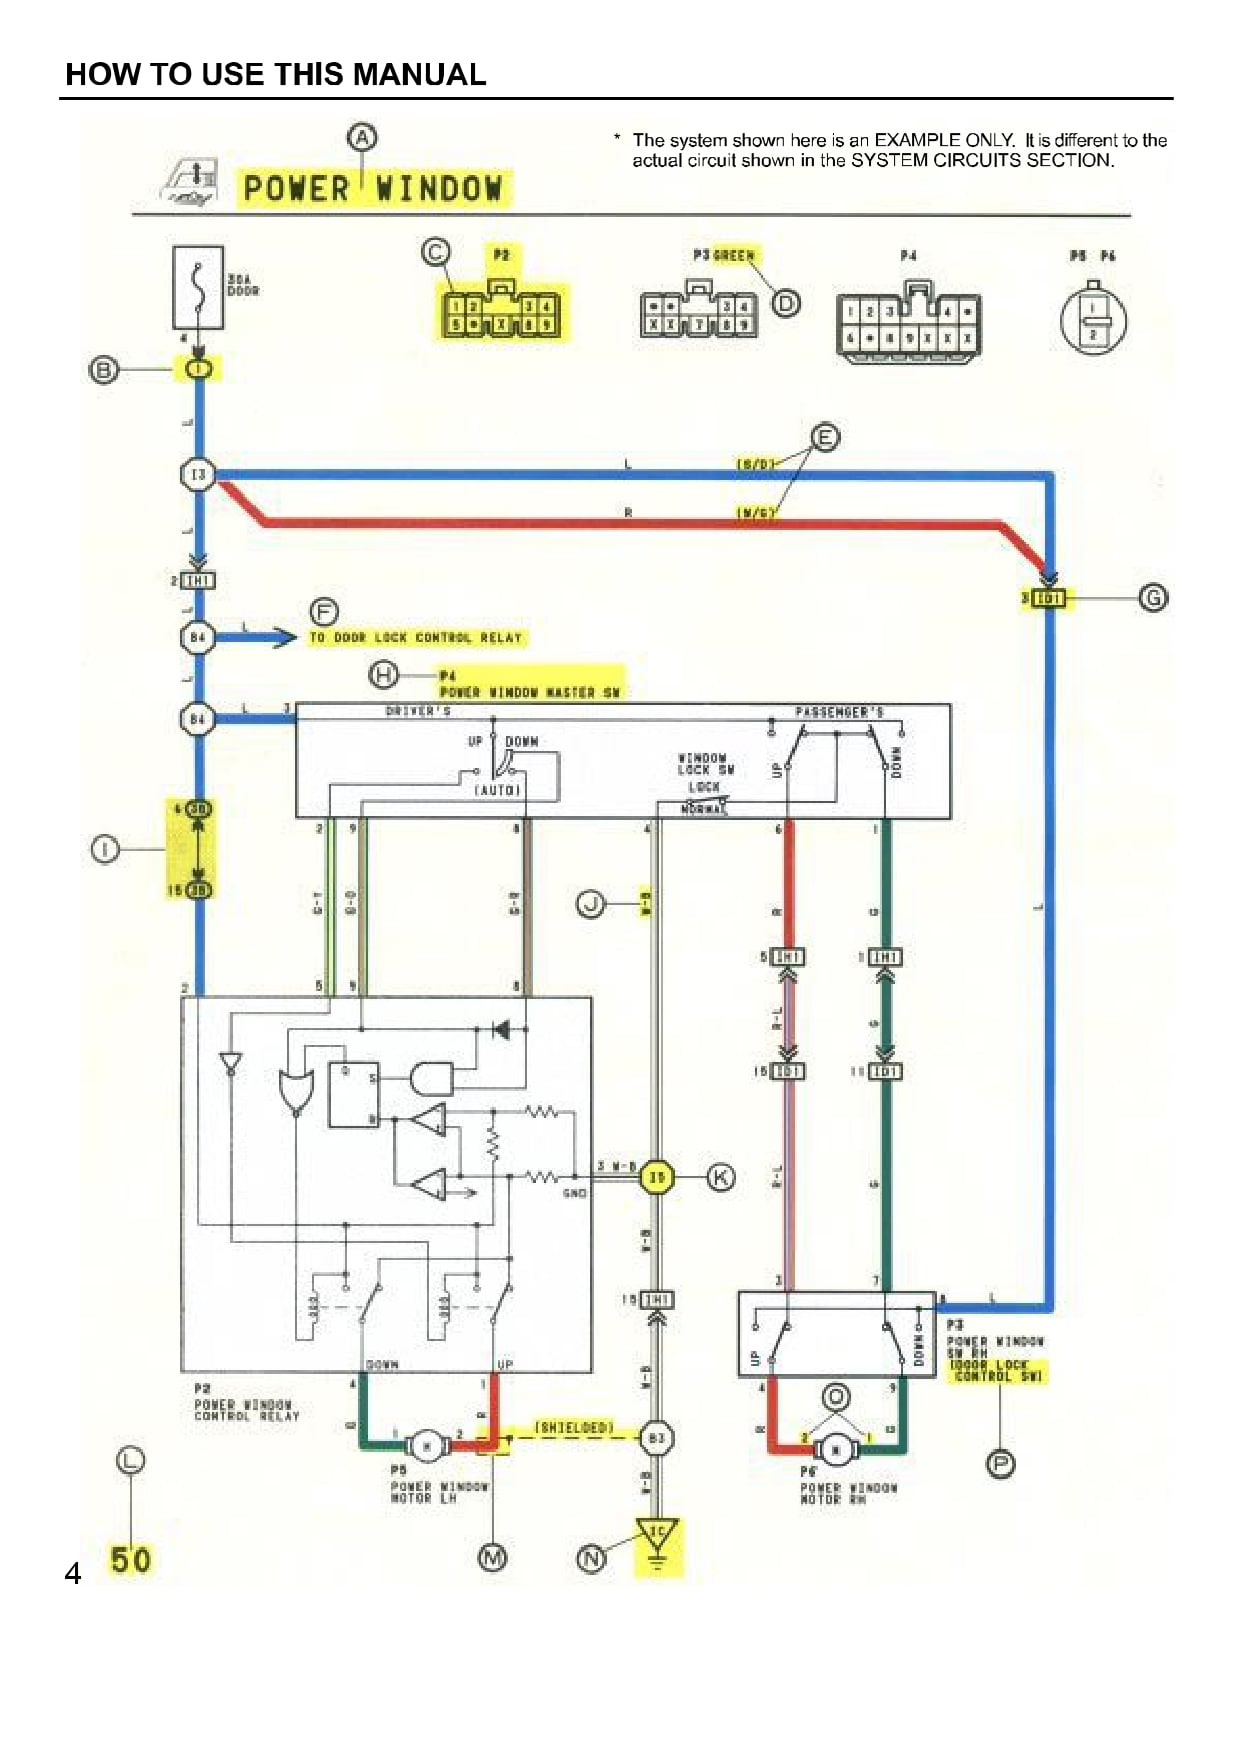 diagram] 2003 toyota camry le wiring diagram full version hd quality wiring  diagram - diagramaplay.club-ronsard.fr  club ronsard